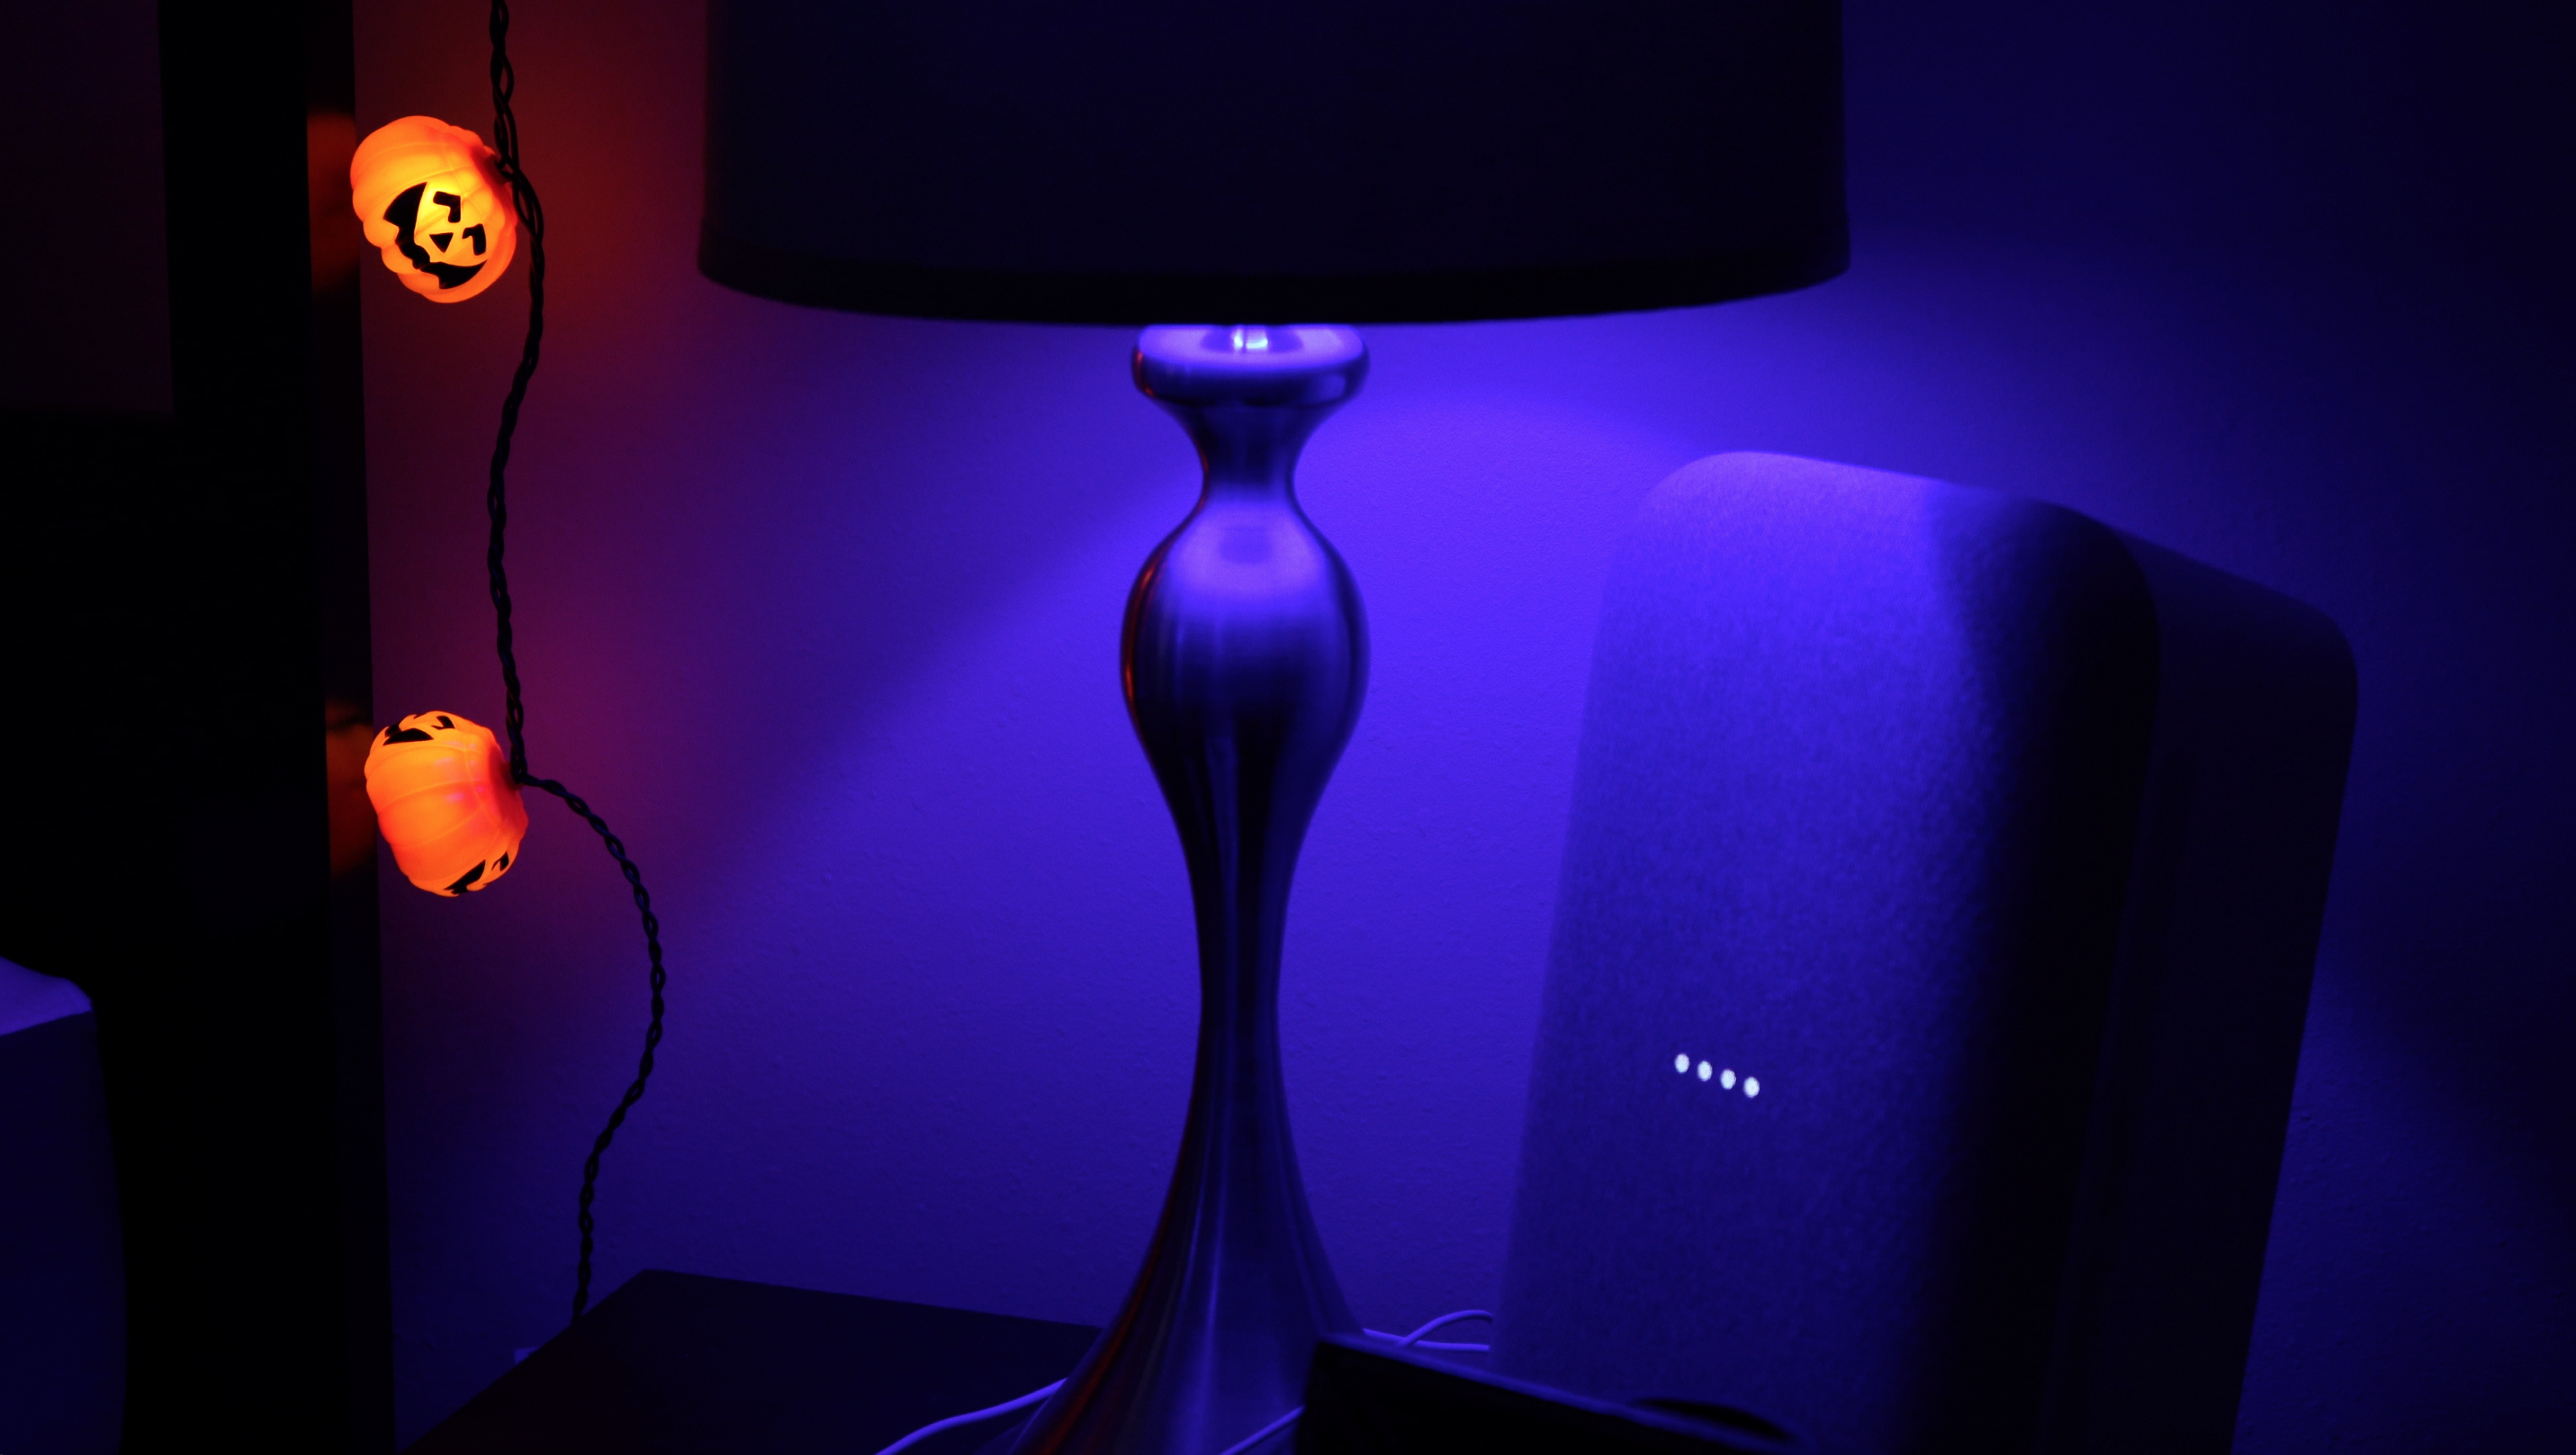 Control lights in the room your Google Home device is in.